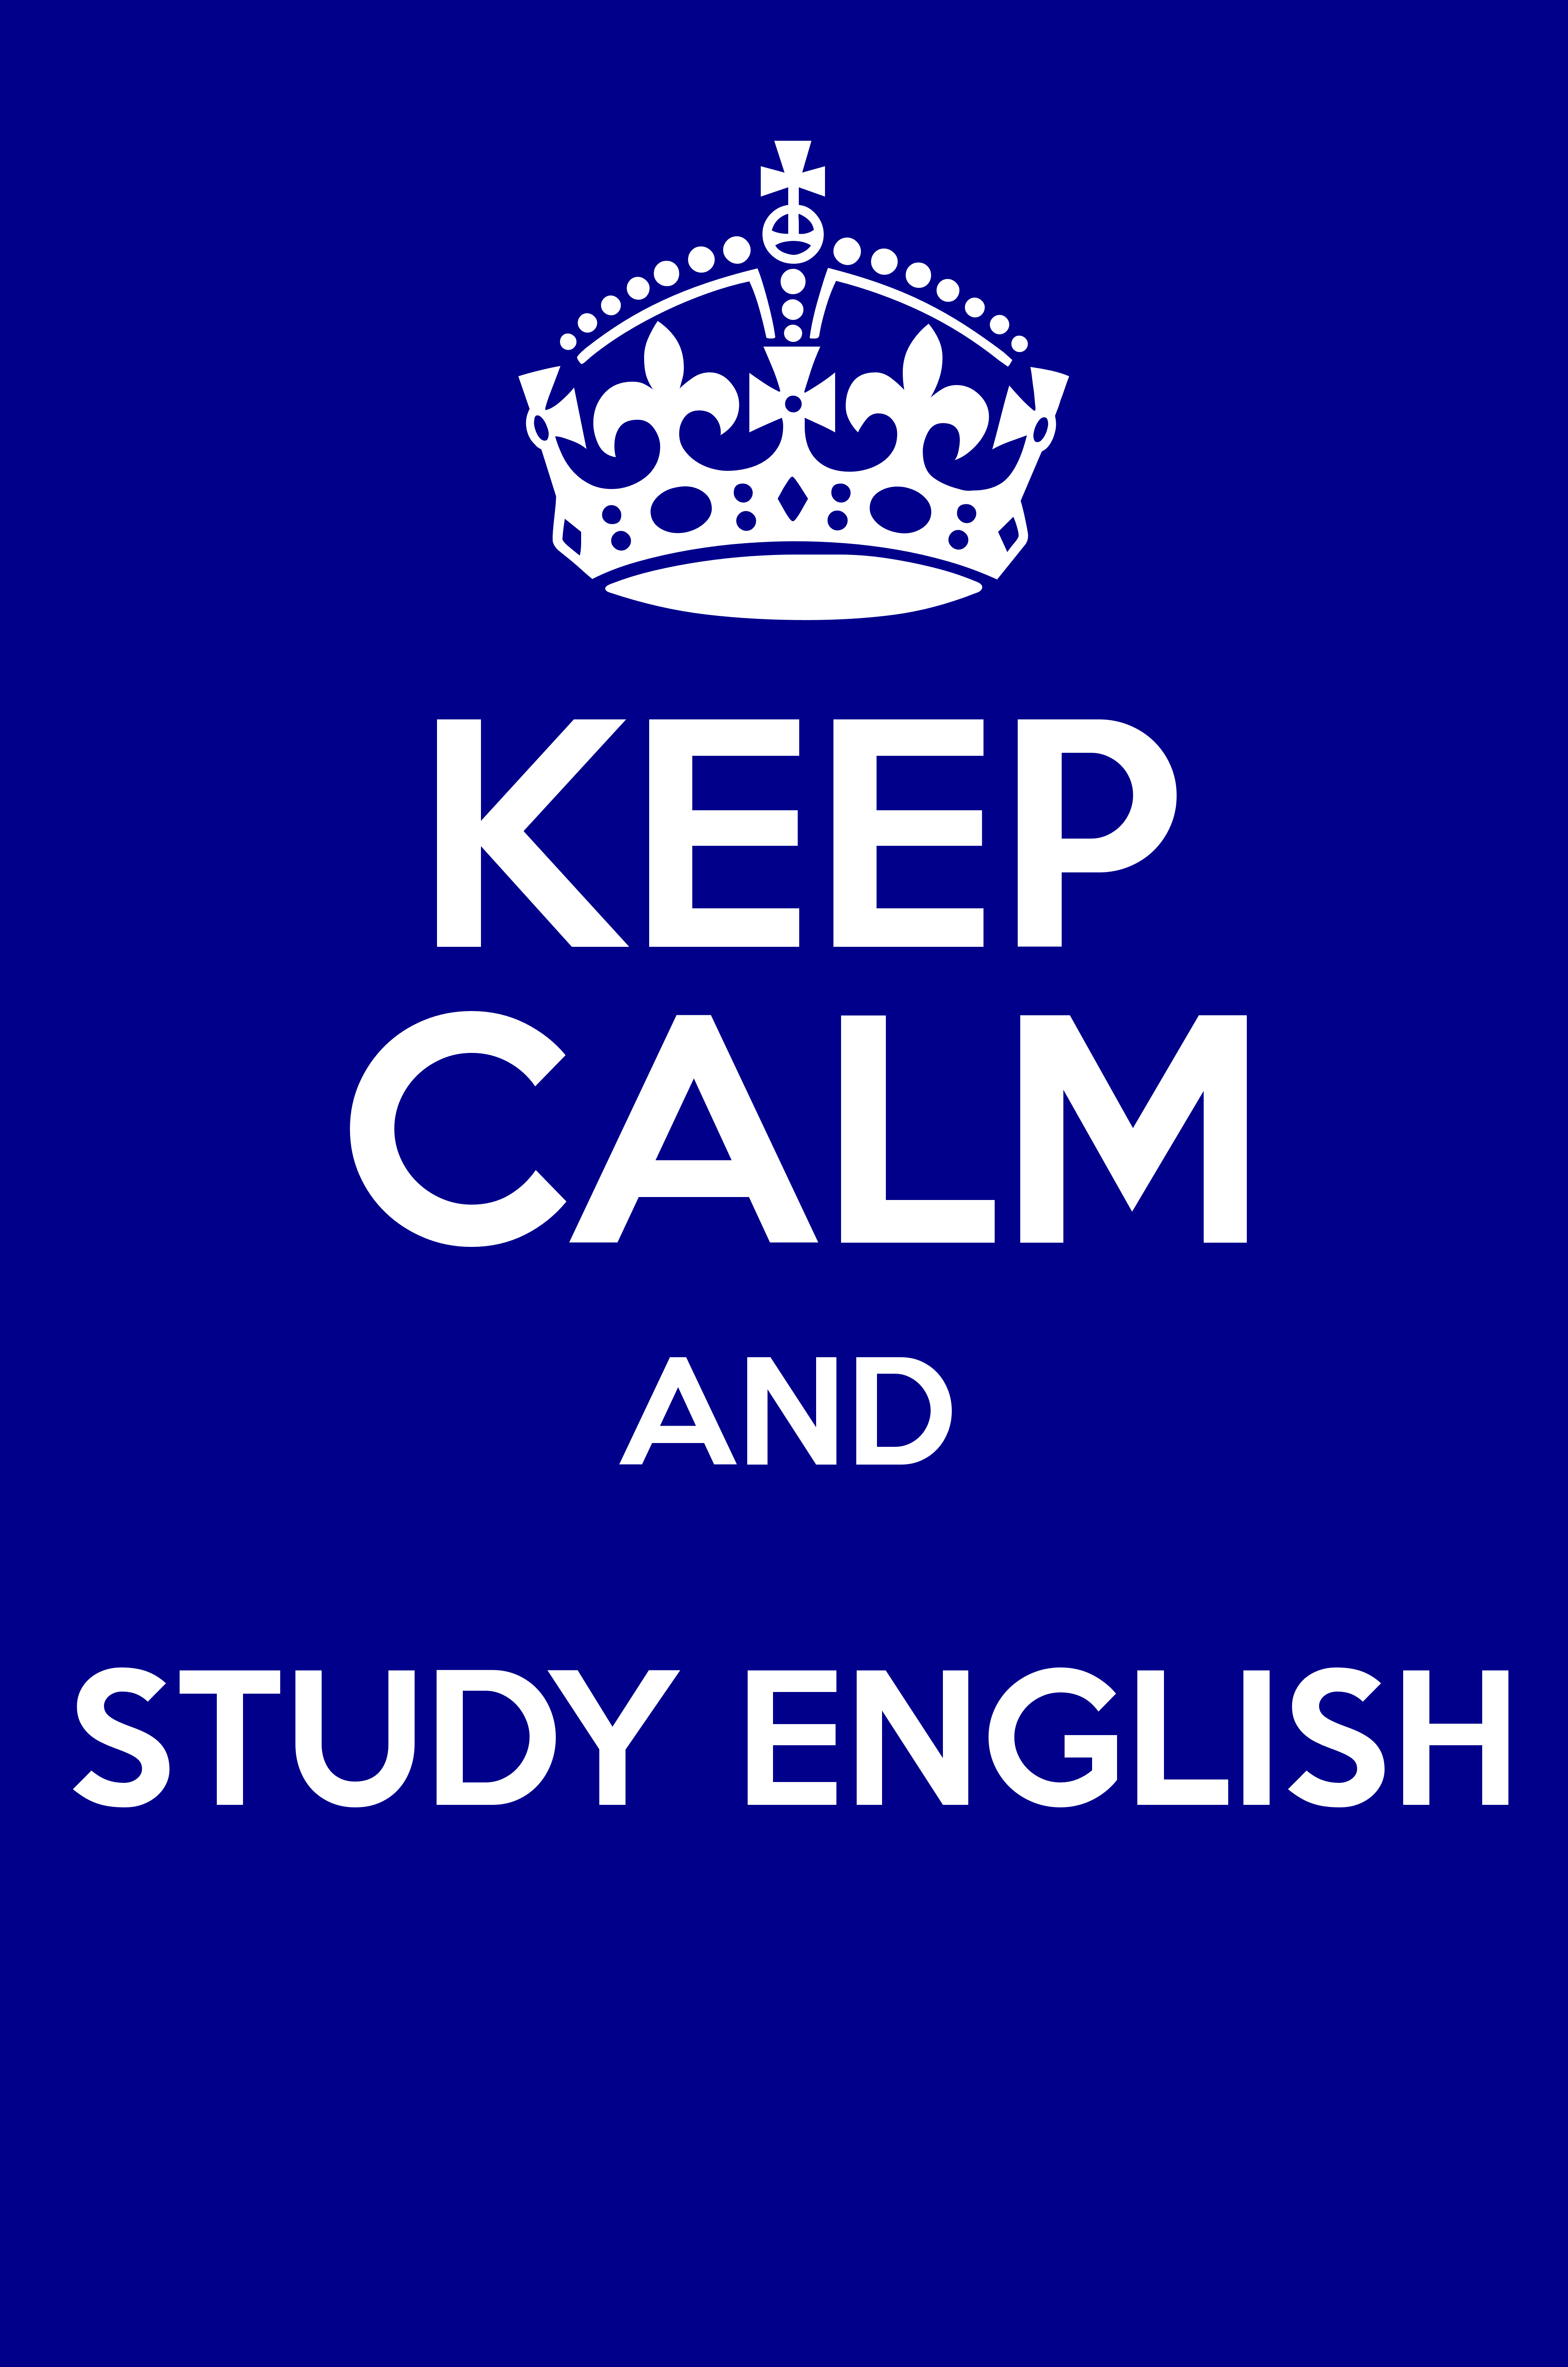 KEEP CALM AND STUDY ENGLISH  Poster